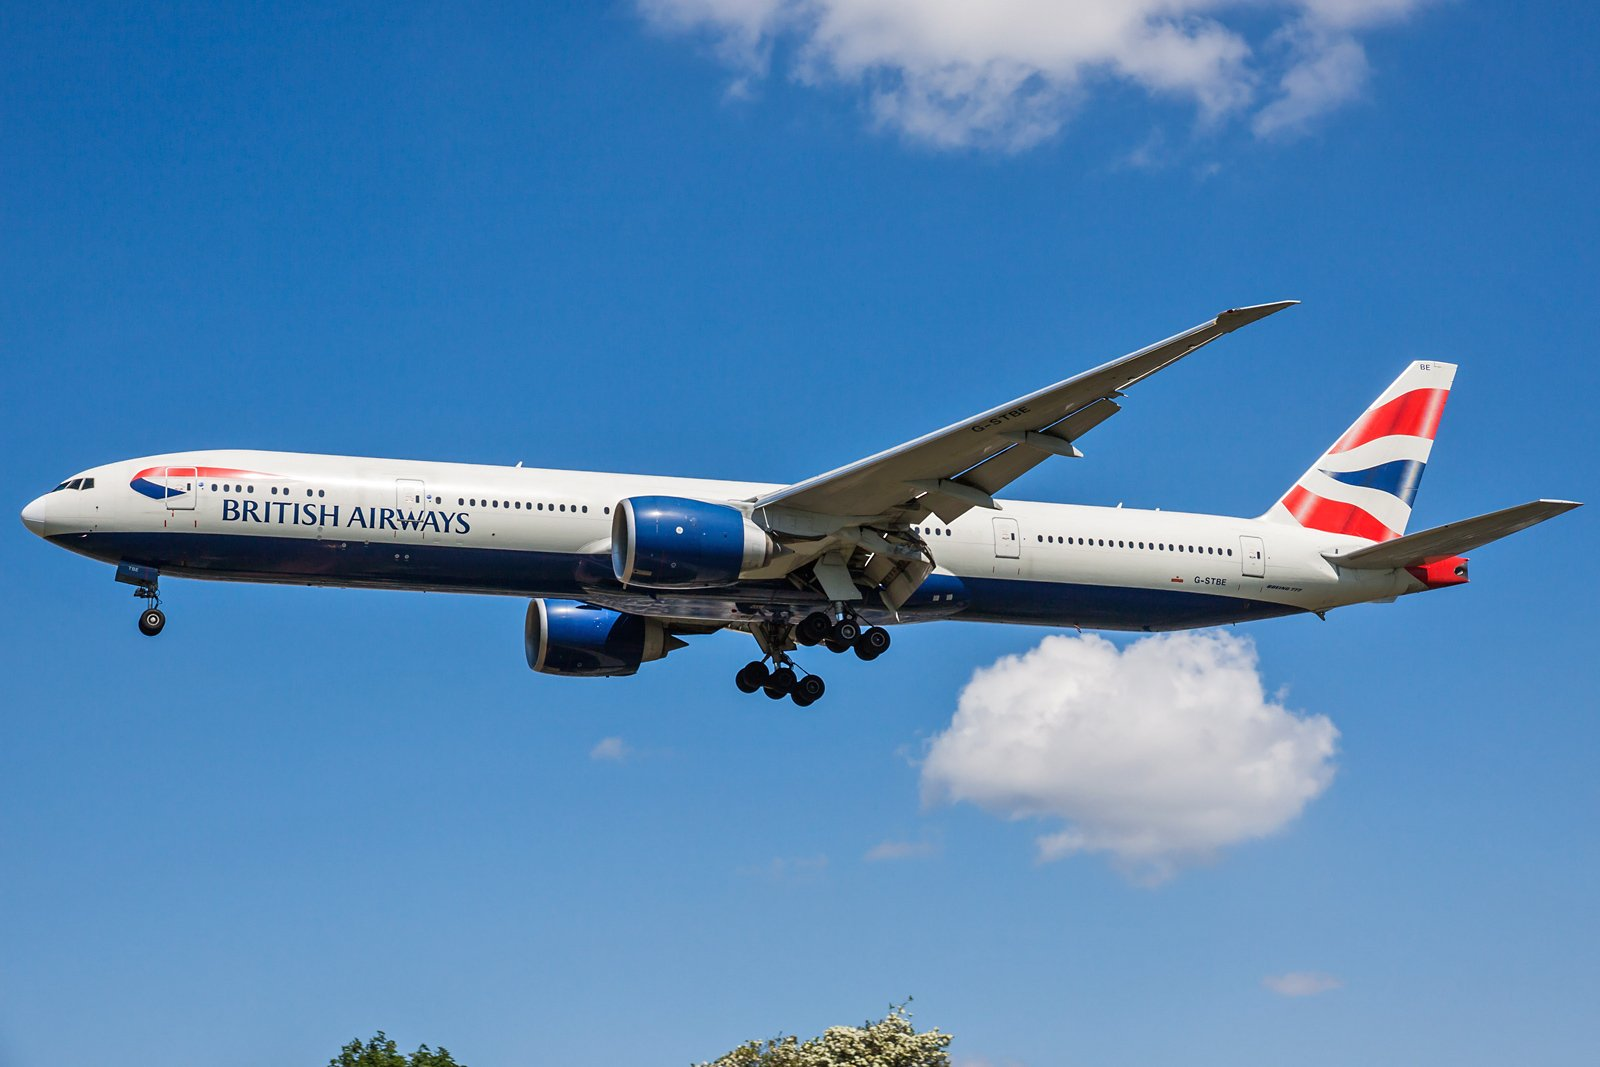 British Airways Boeing 777-36N(ER) G-STBE